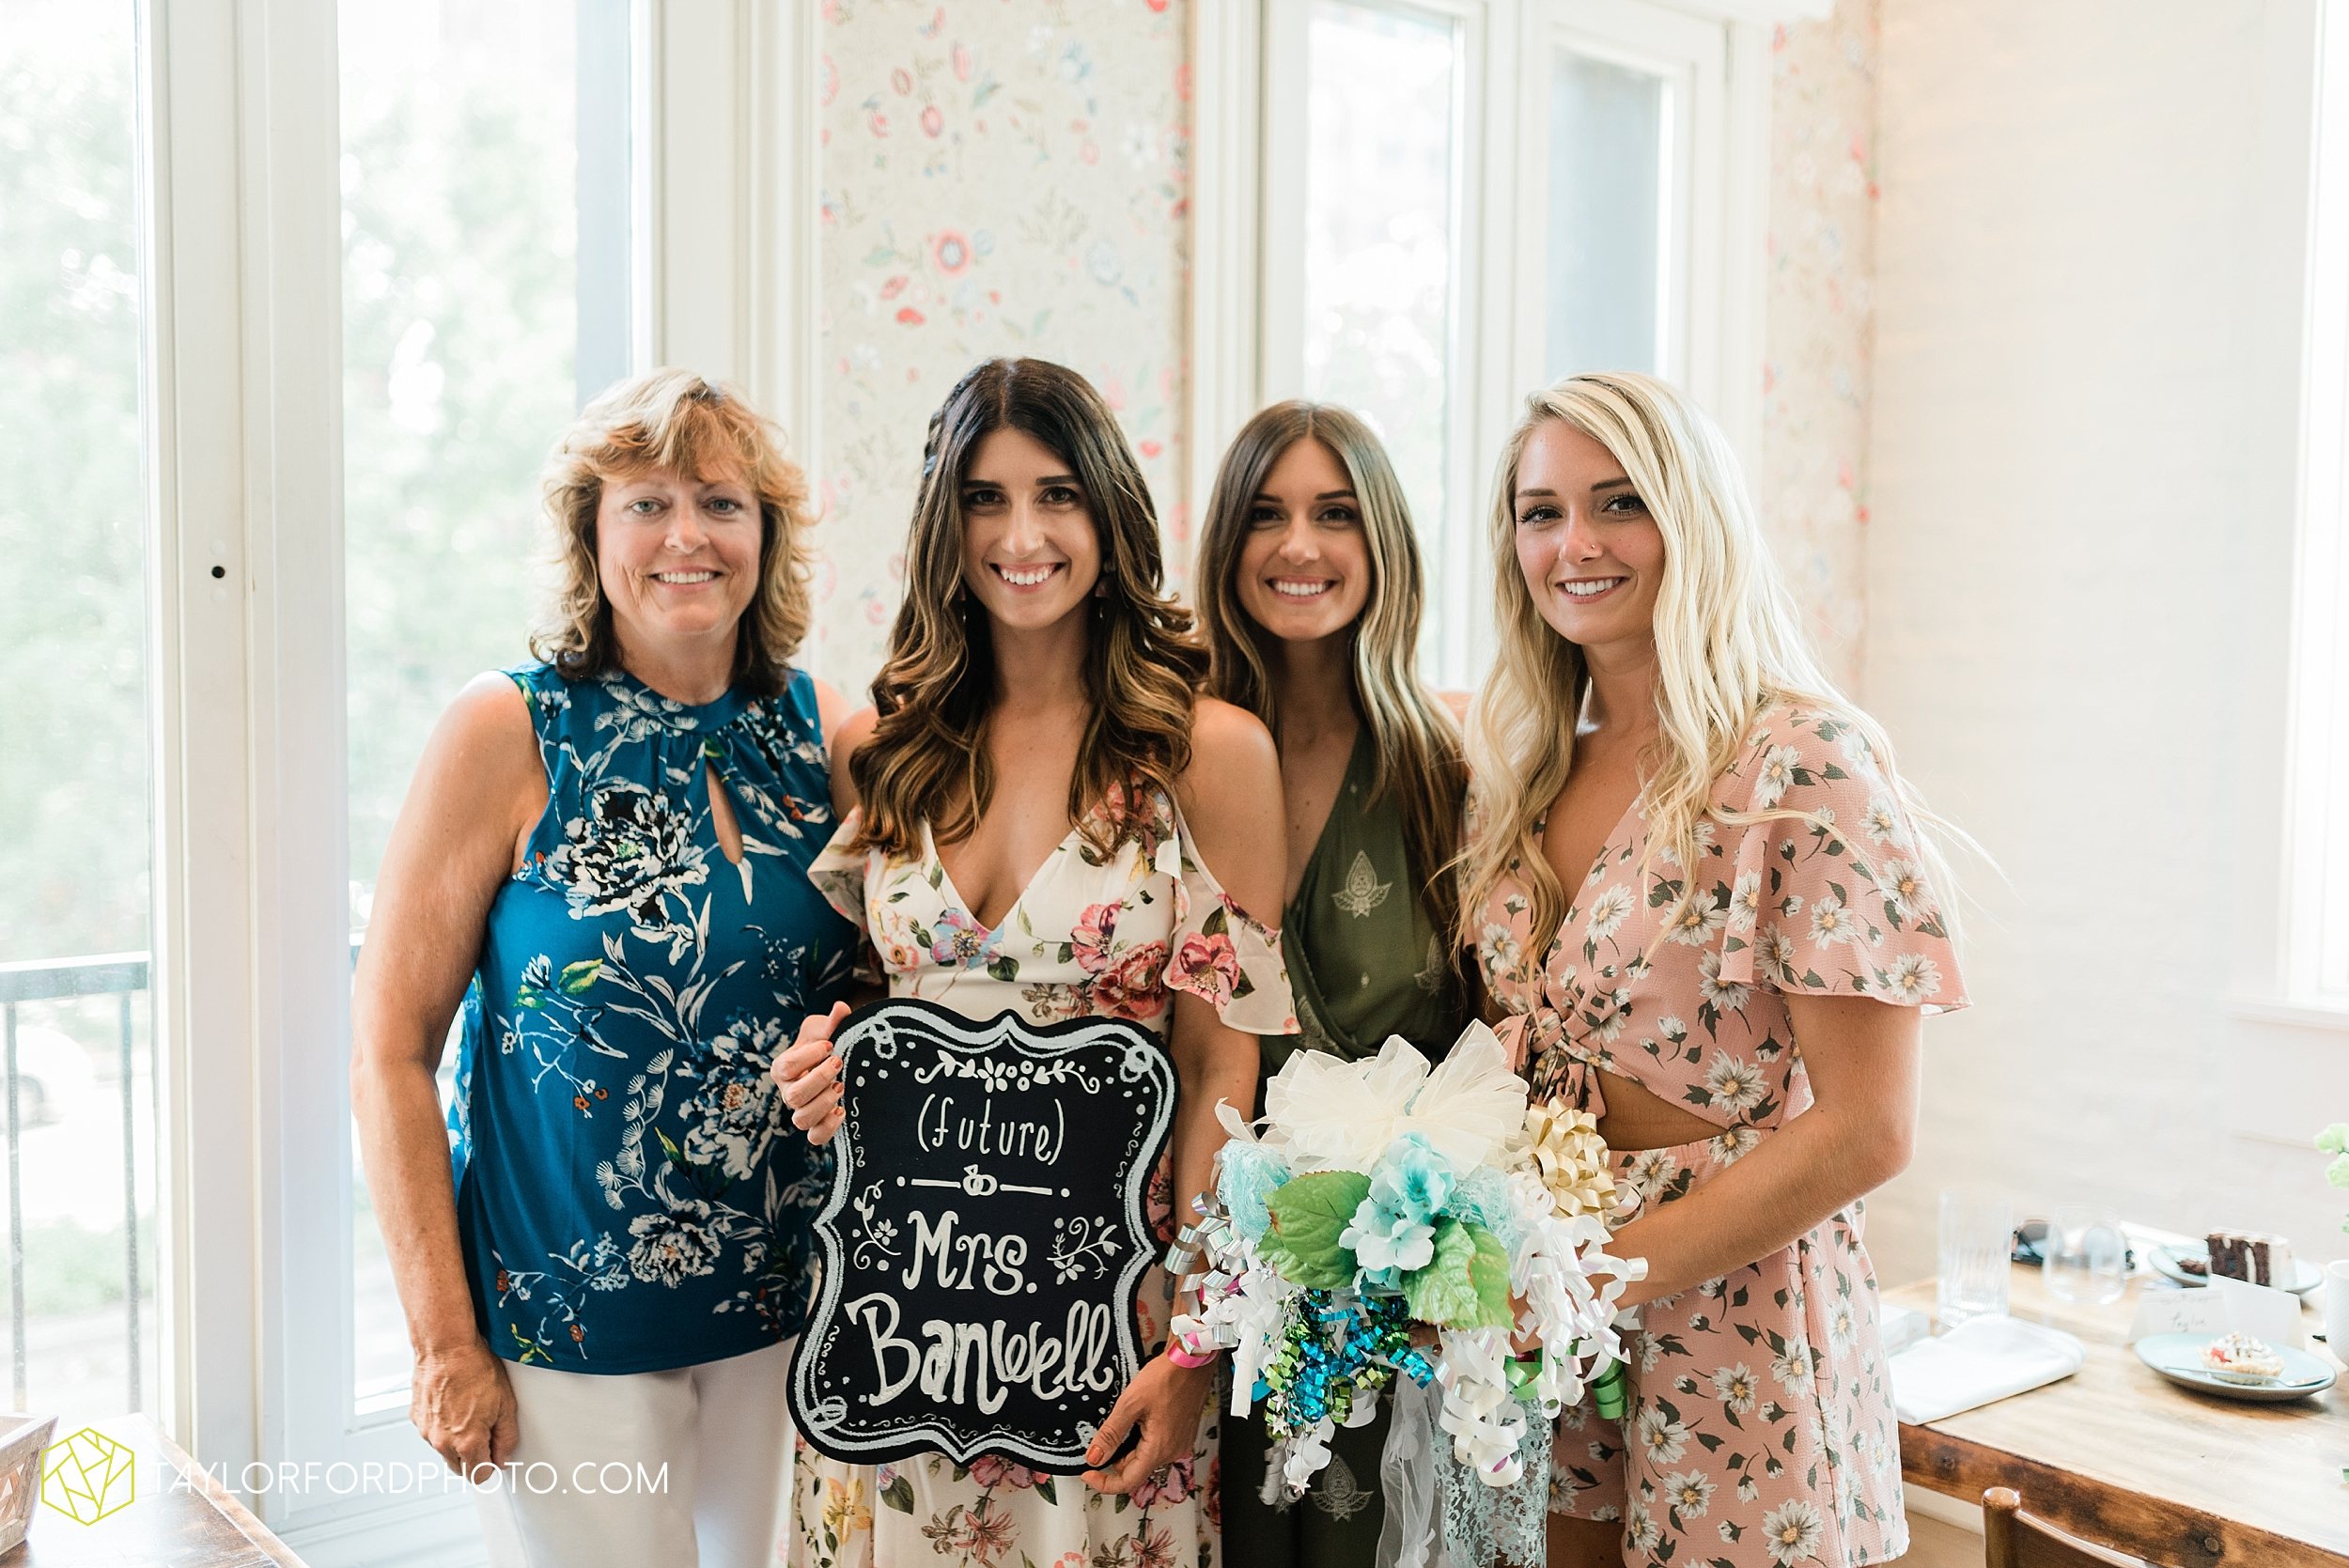 chicago-illinois-bridal-shower-little-goat-diner-west-loop-wedding-photographer-taylor-ford-photographer_8865.jpg